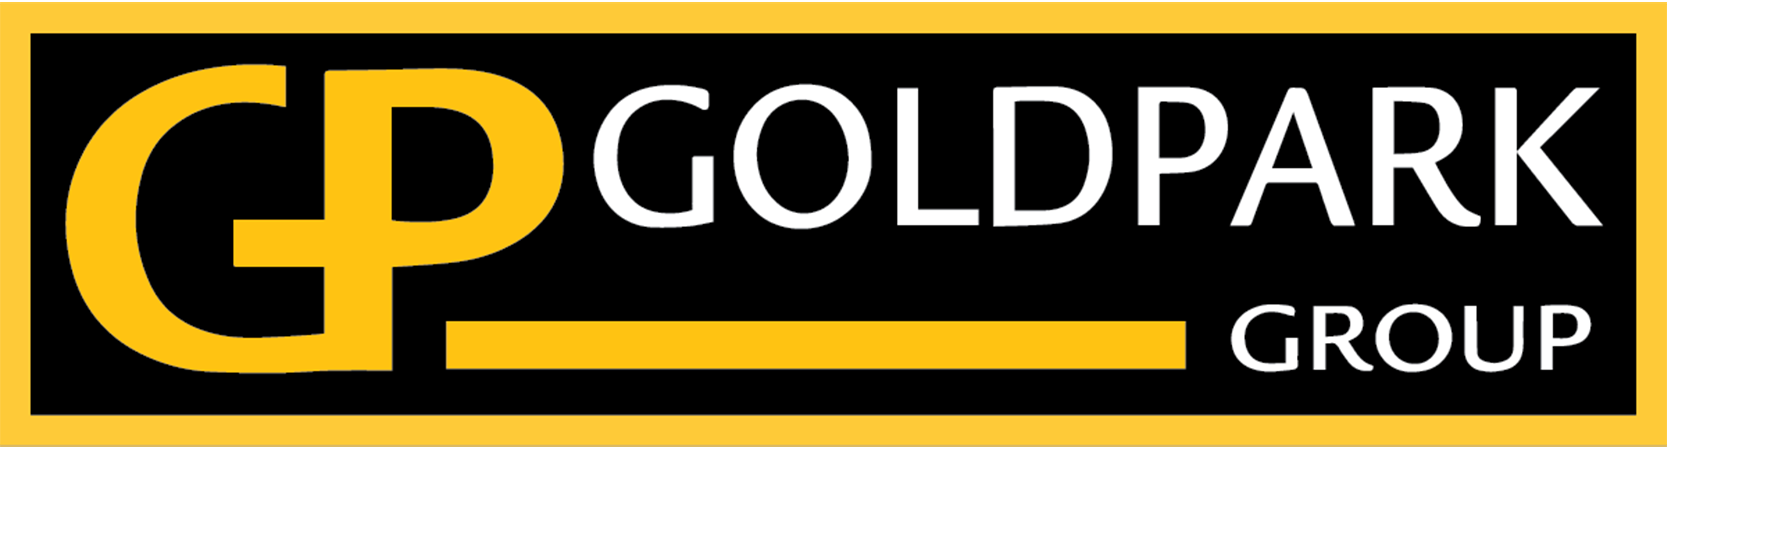 Goldpark Group